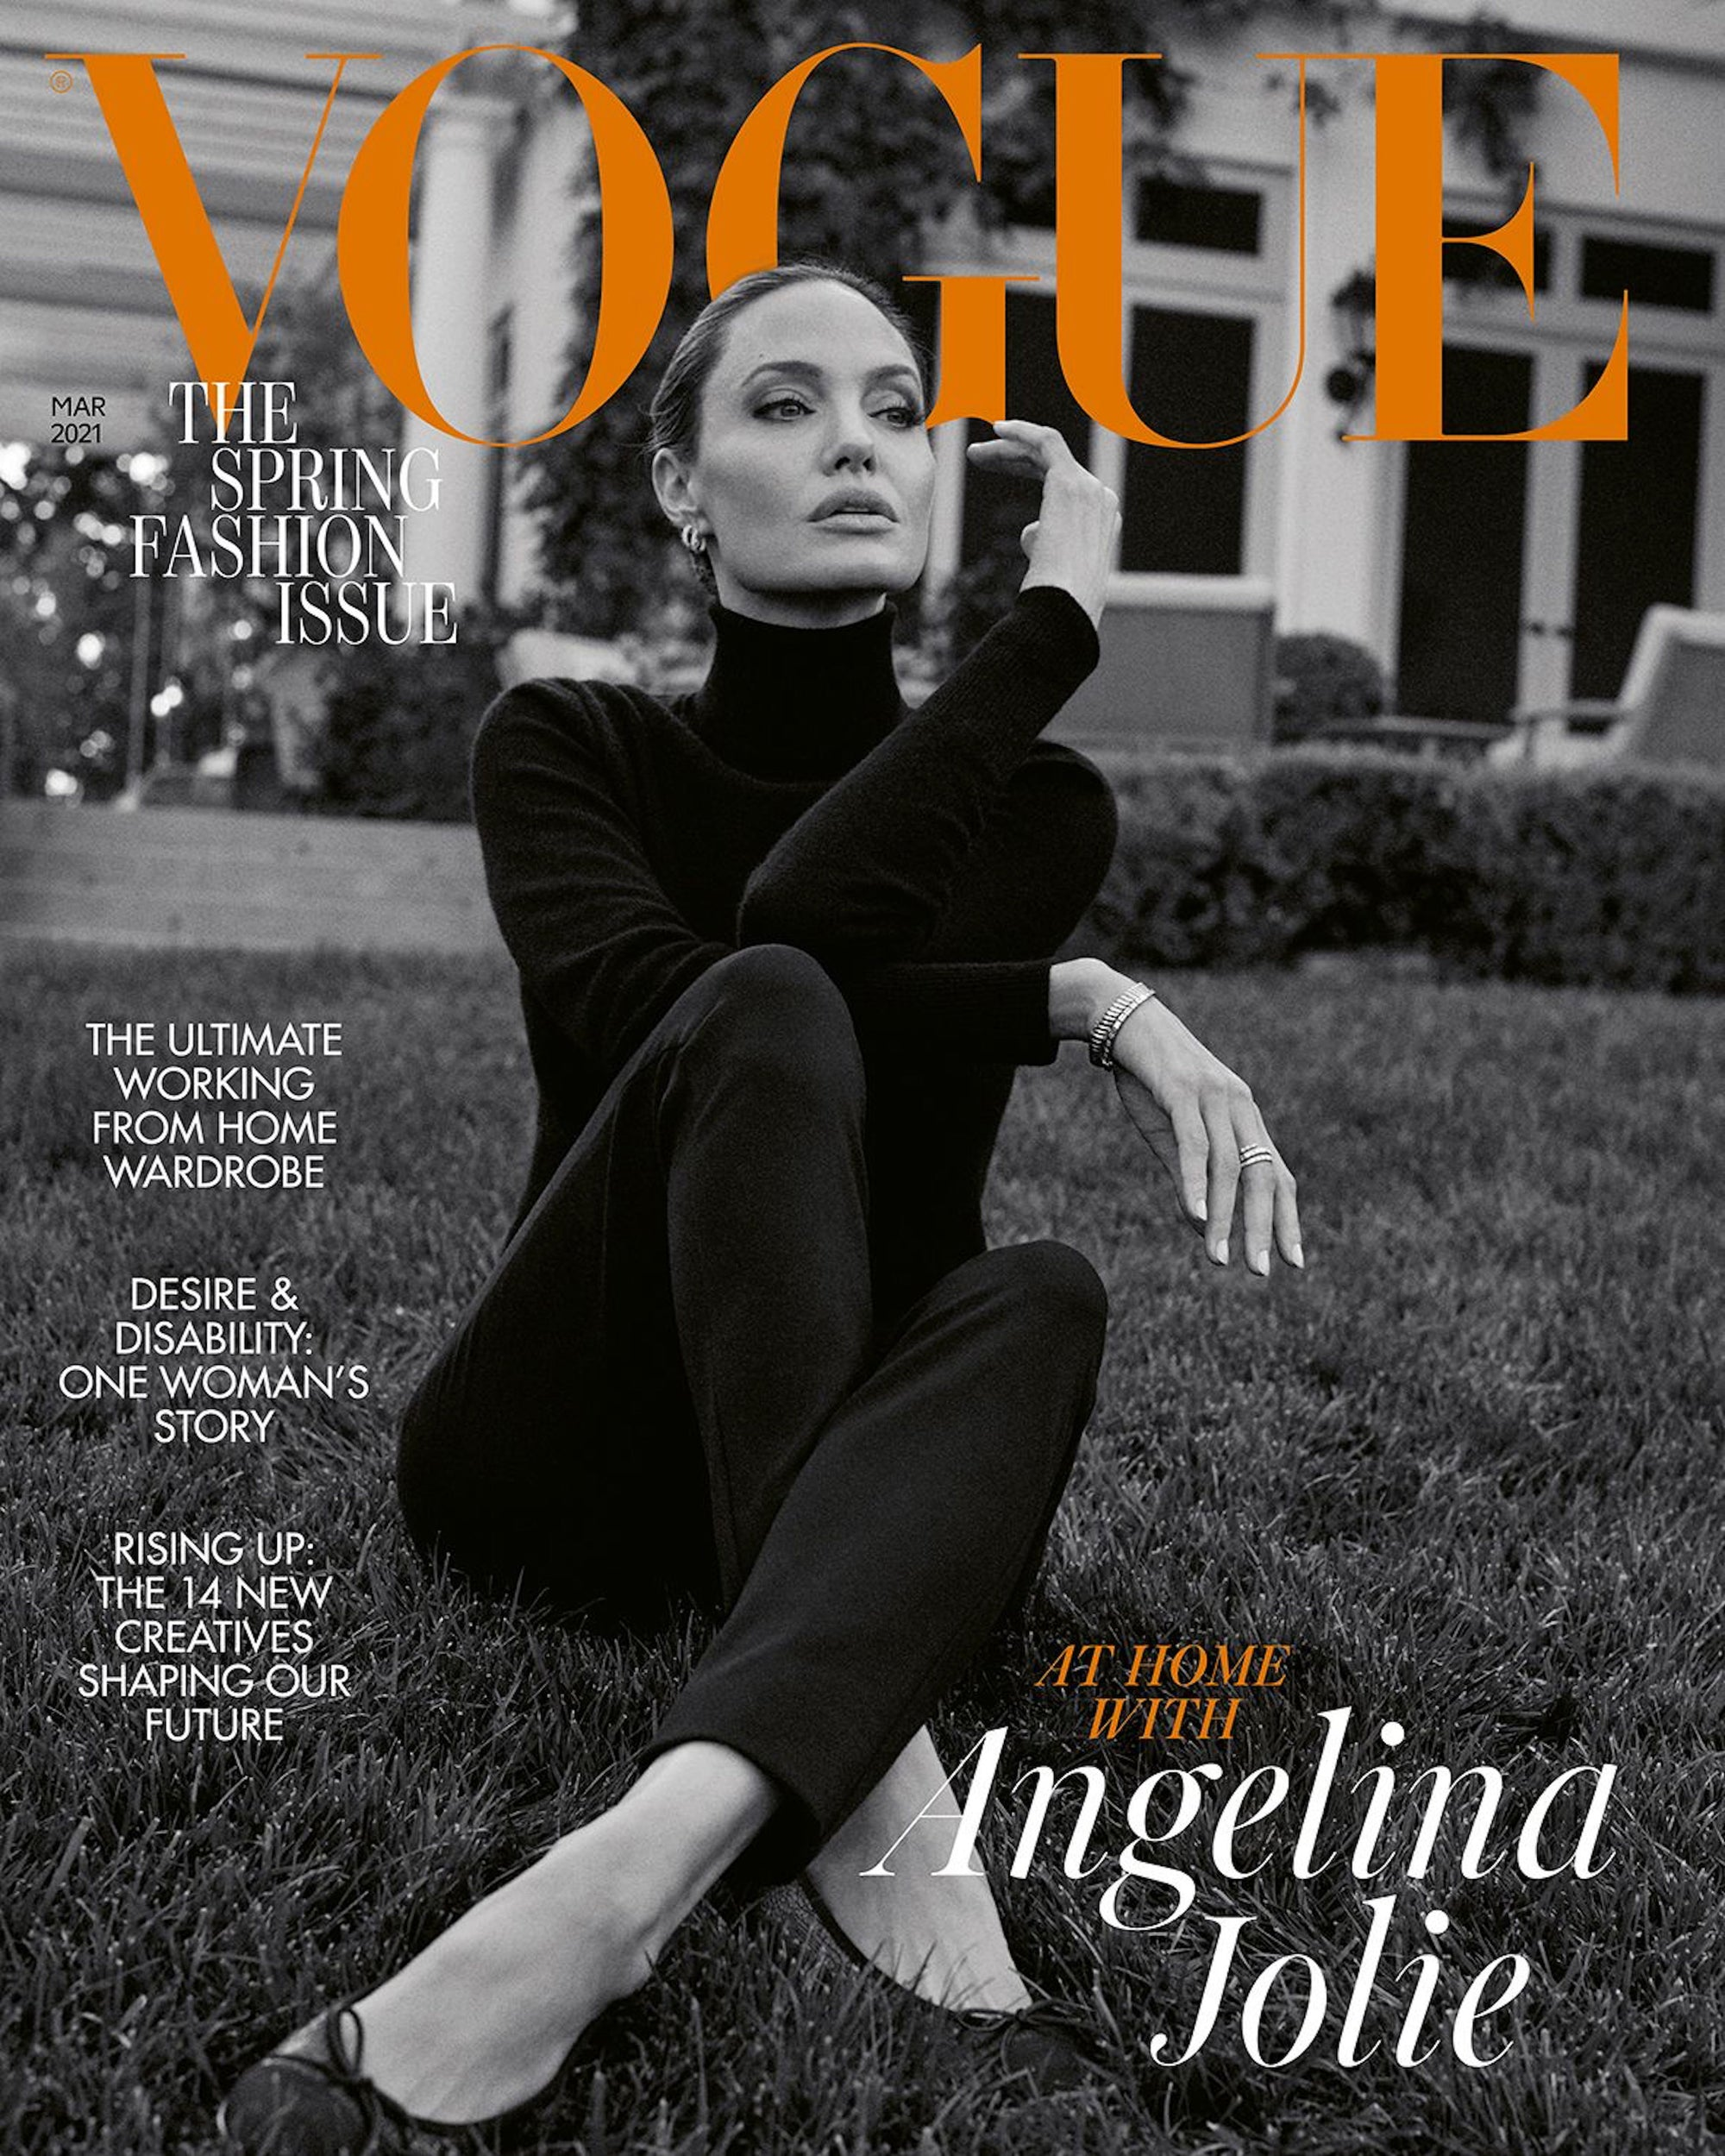 VOGUE March 2021 - Cover - Angelina Jolie